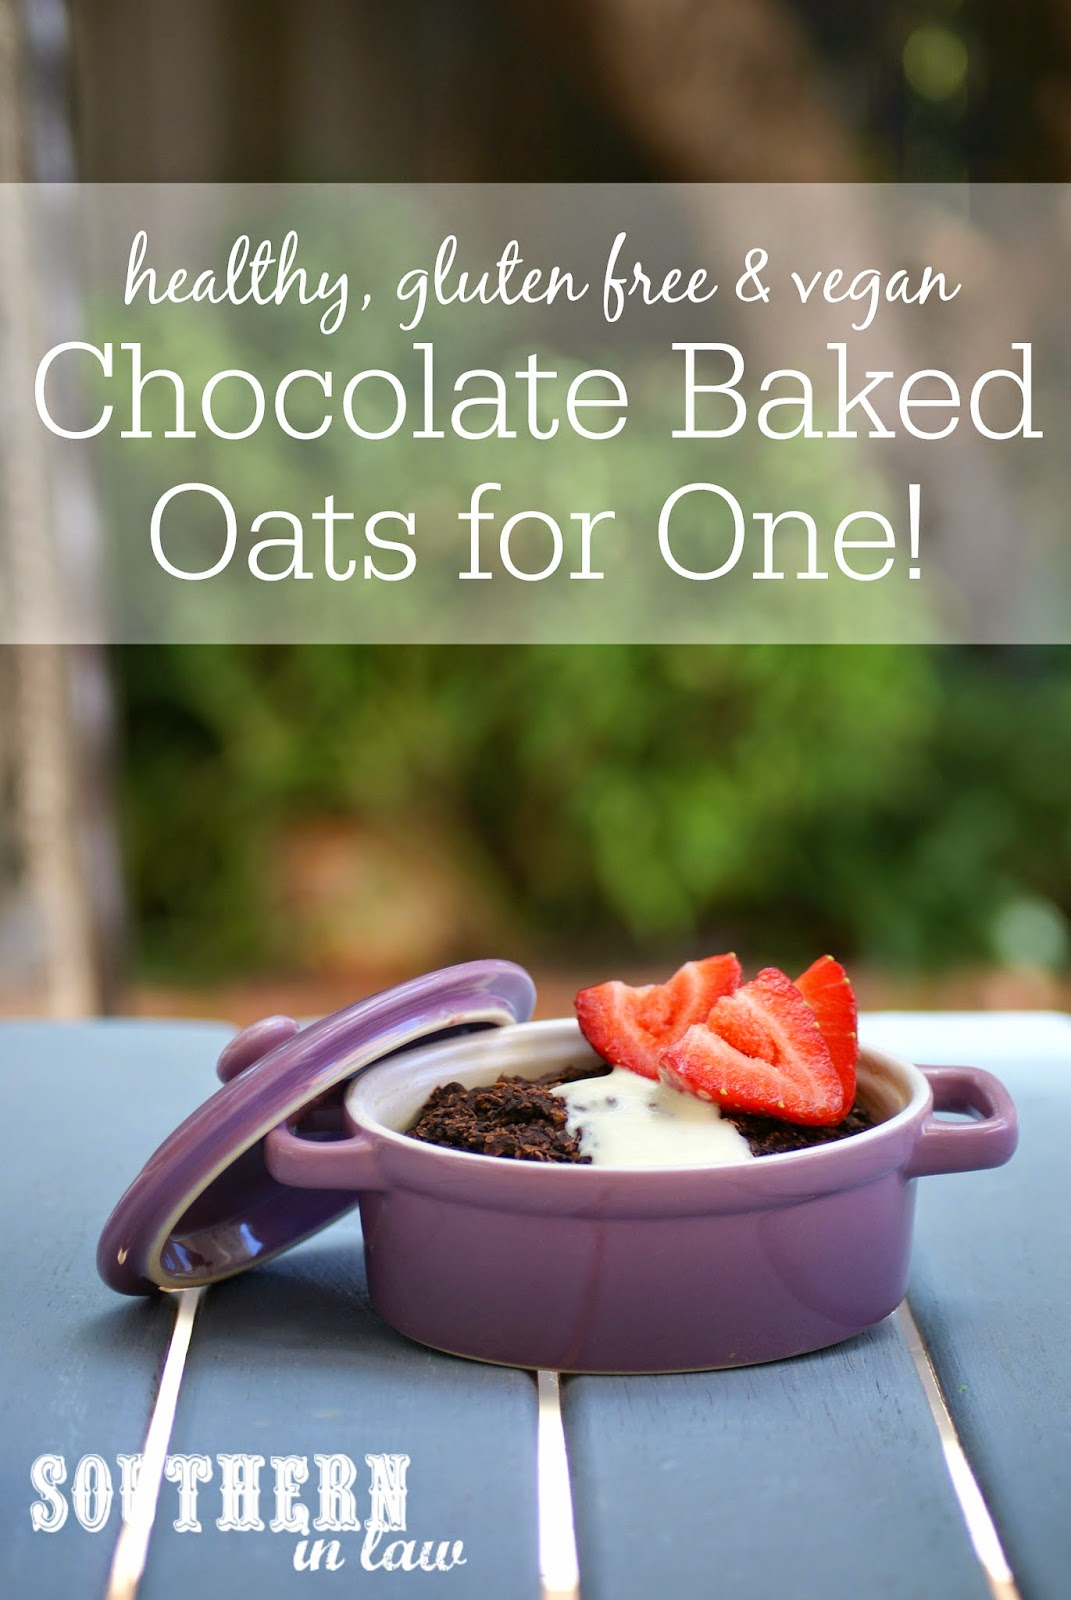 Healthy Chocolate Baked Oats Recipe - low fat, gluten free, sugar free, vegan, healthy